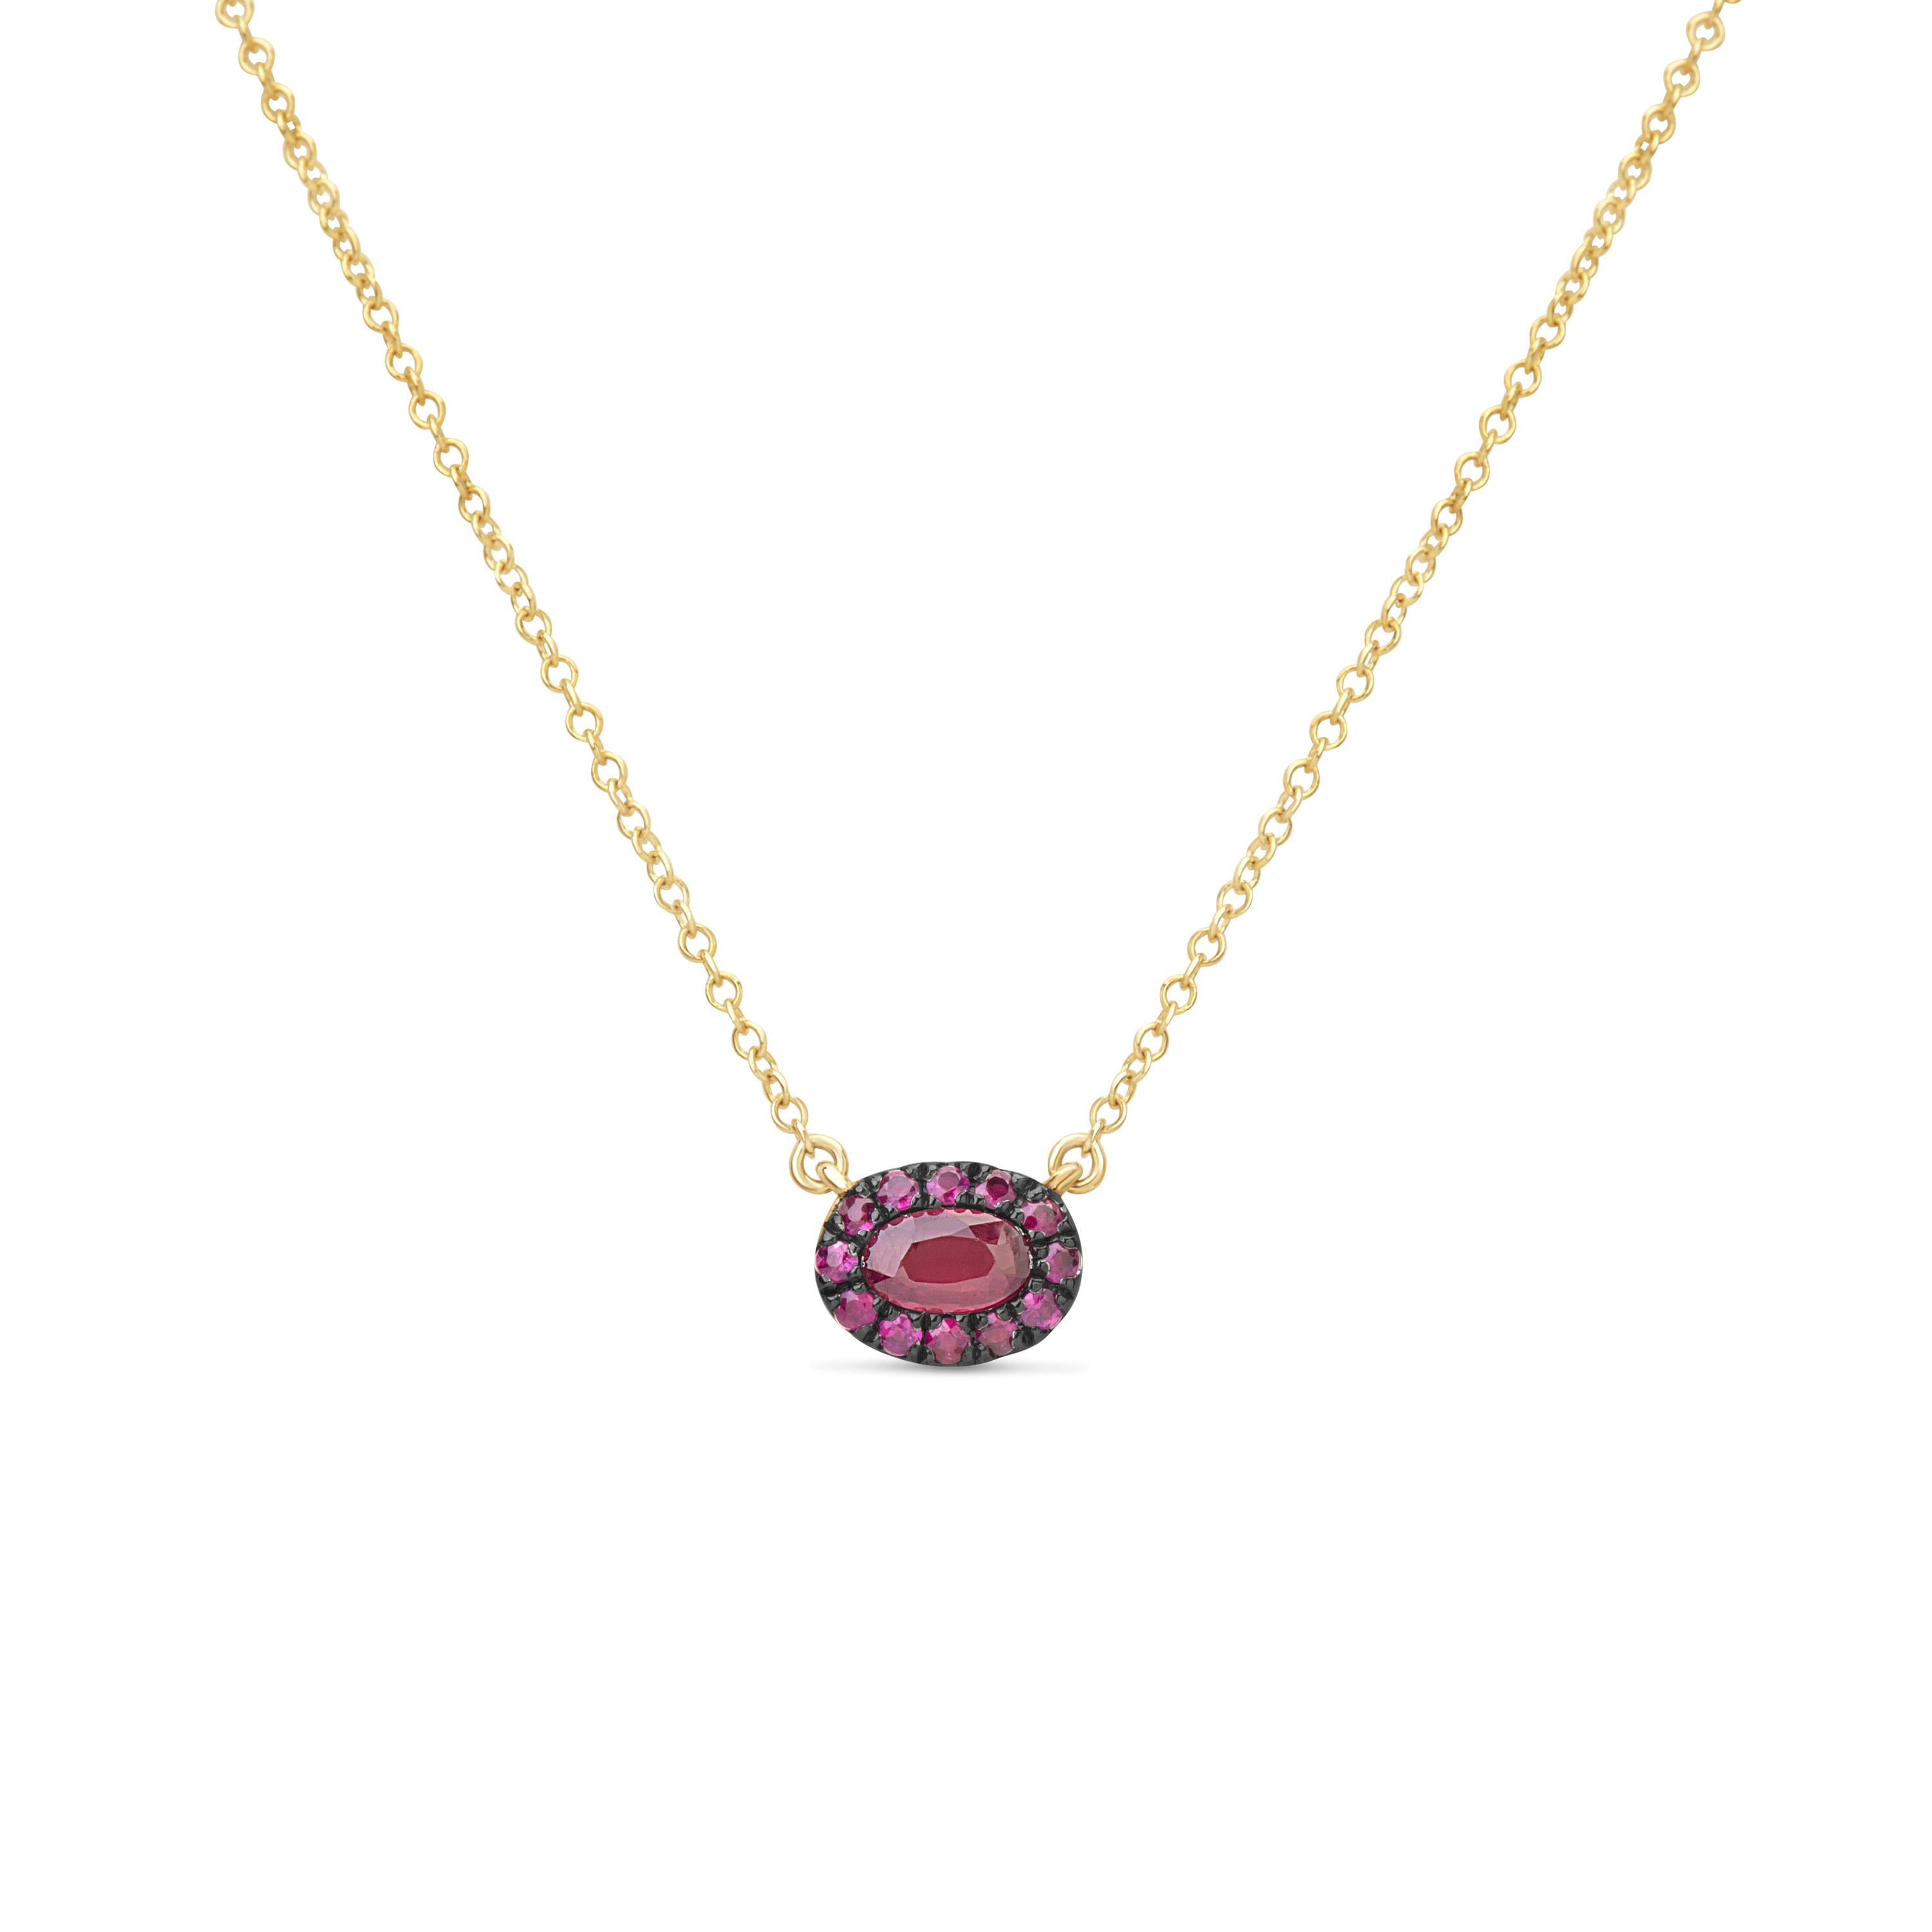 Ruby Oval Pendant Necklace